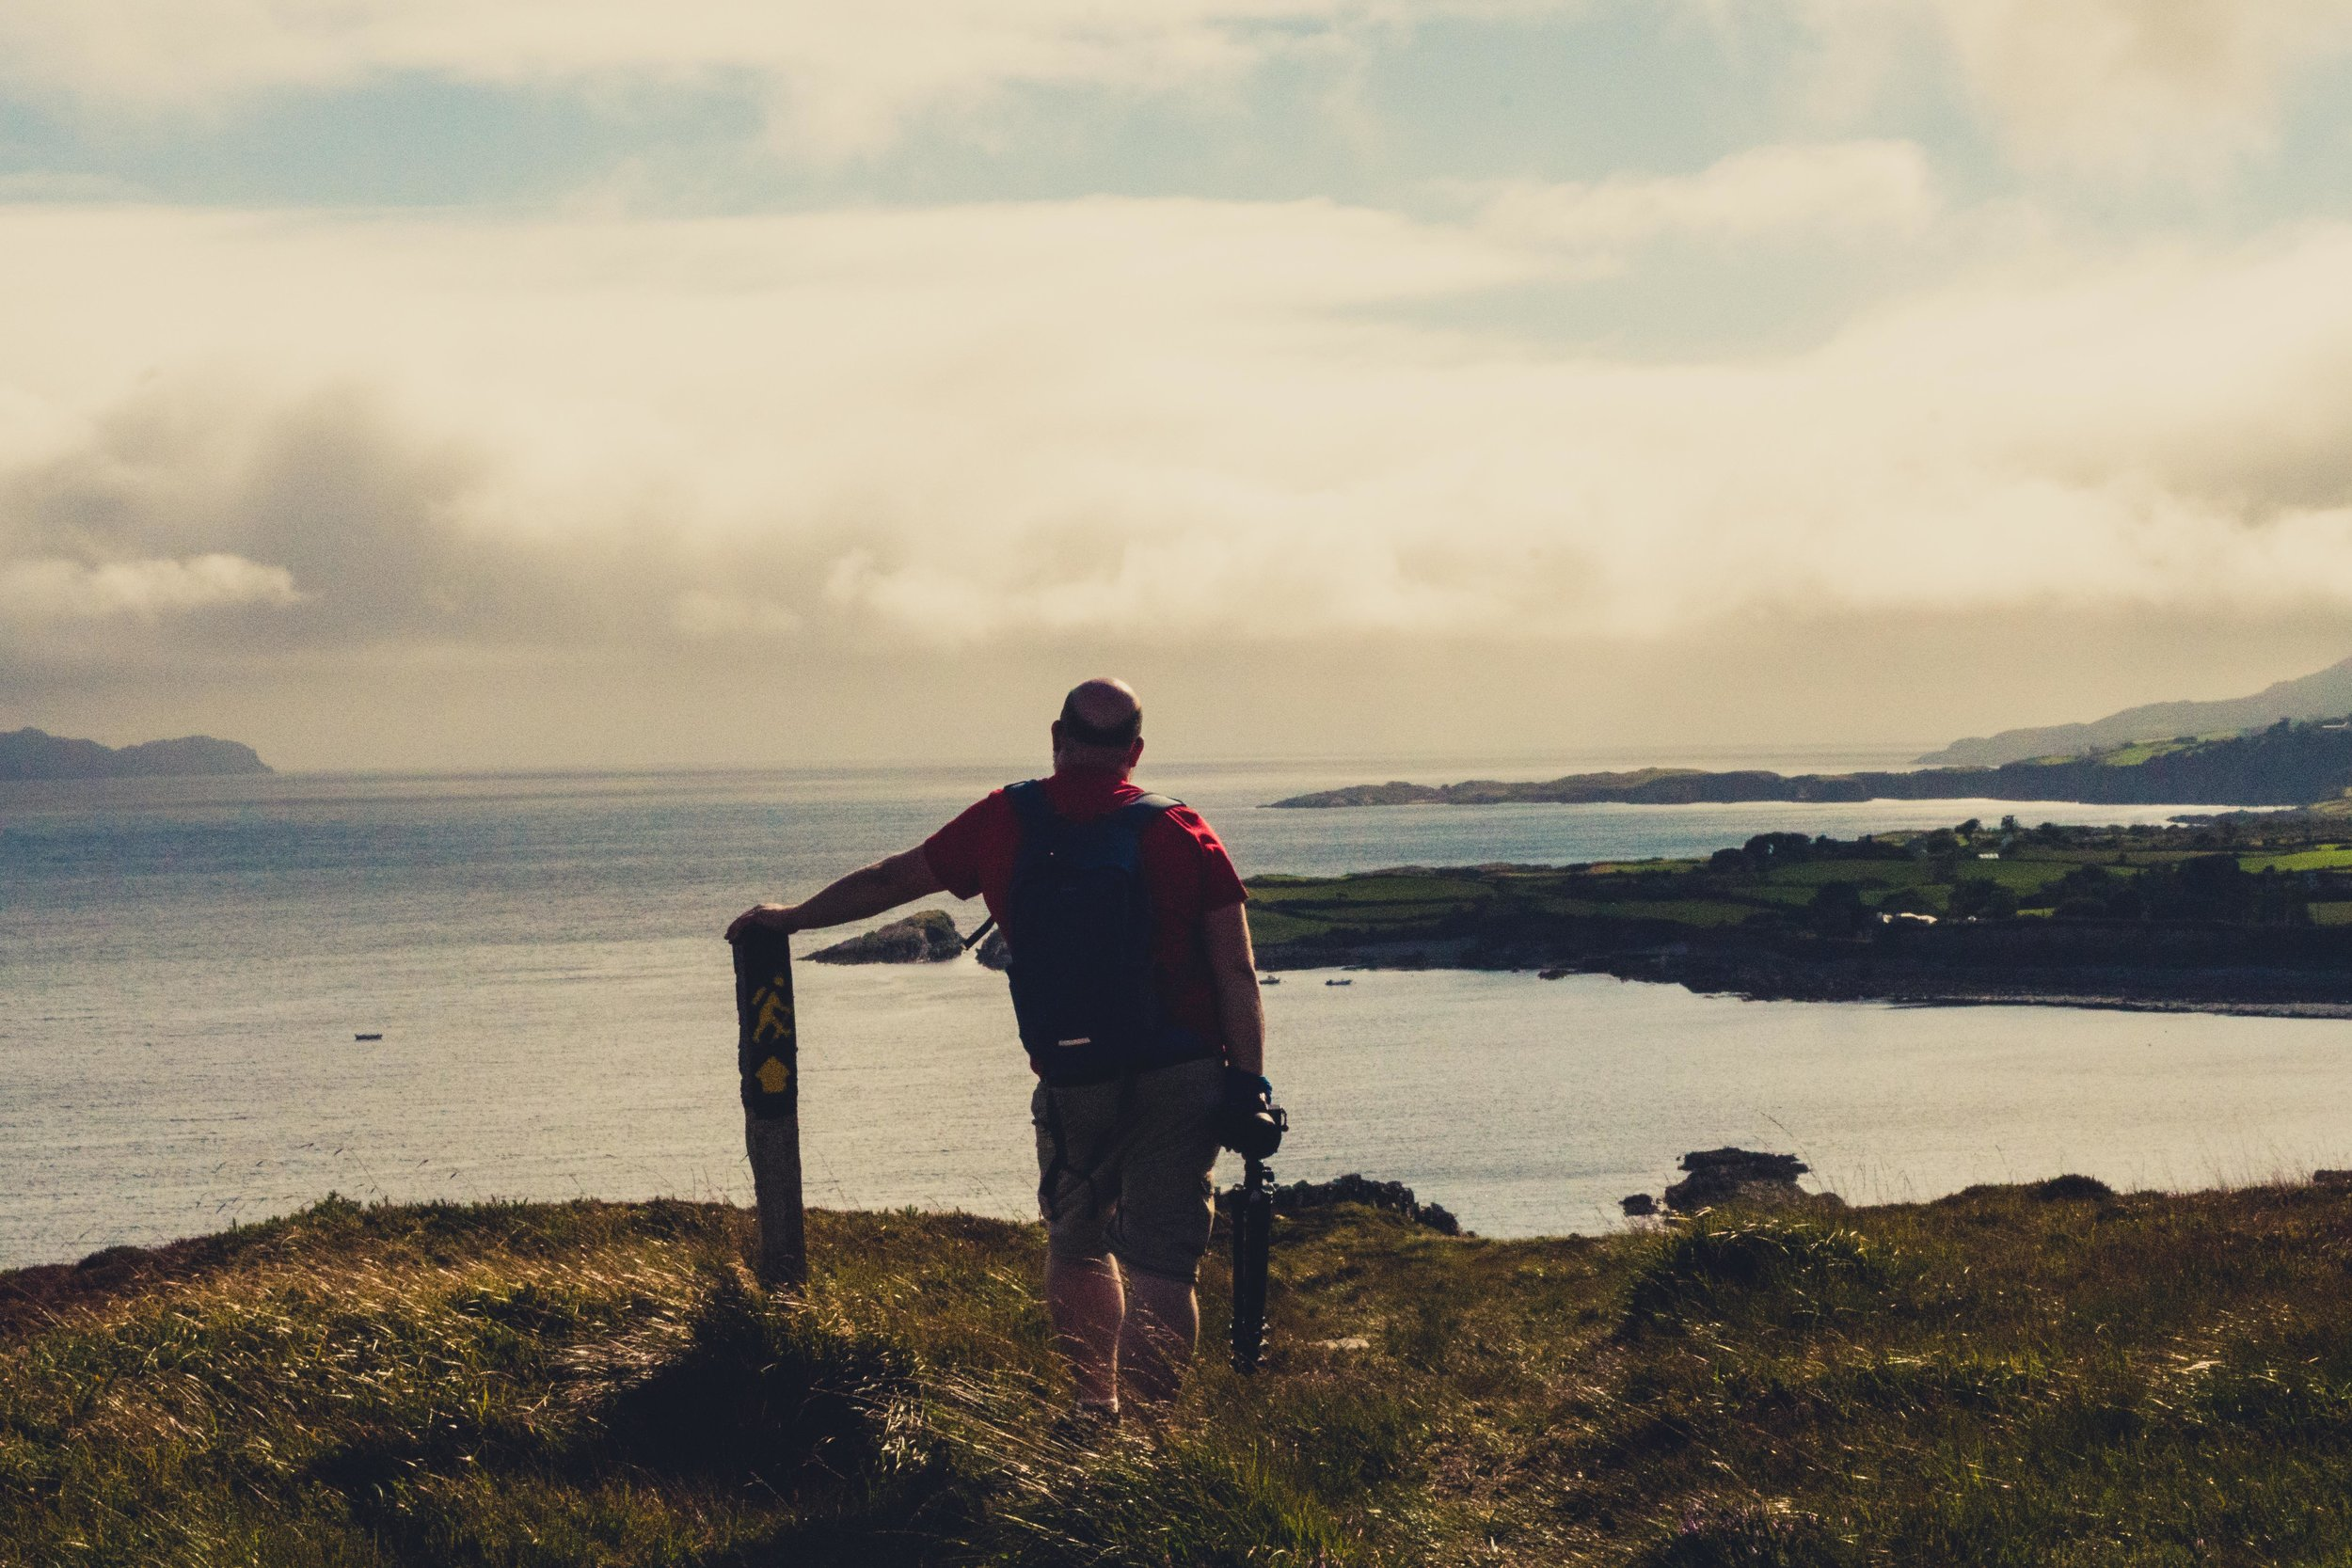 county cork. cork. ireland. irish. history. city. house sitting. old. travel. travel photography. travel photographer. lough hyne. hiking. outdoor. adventure. over looking the sea. out and about.jpg